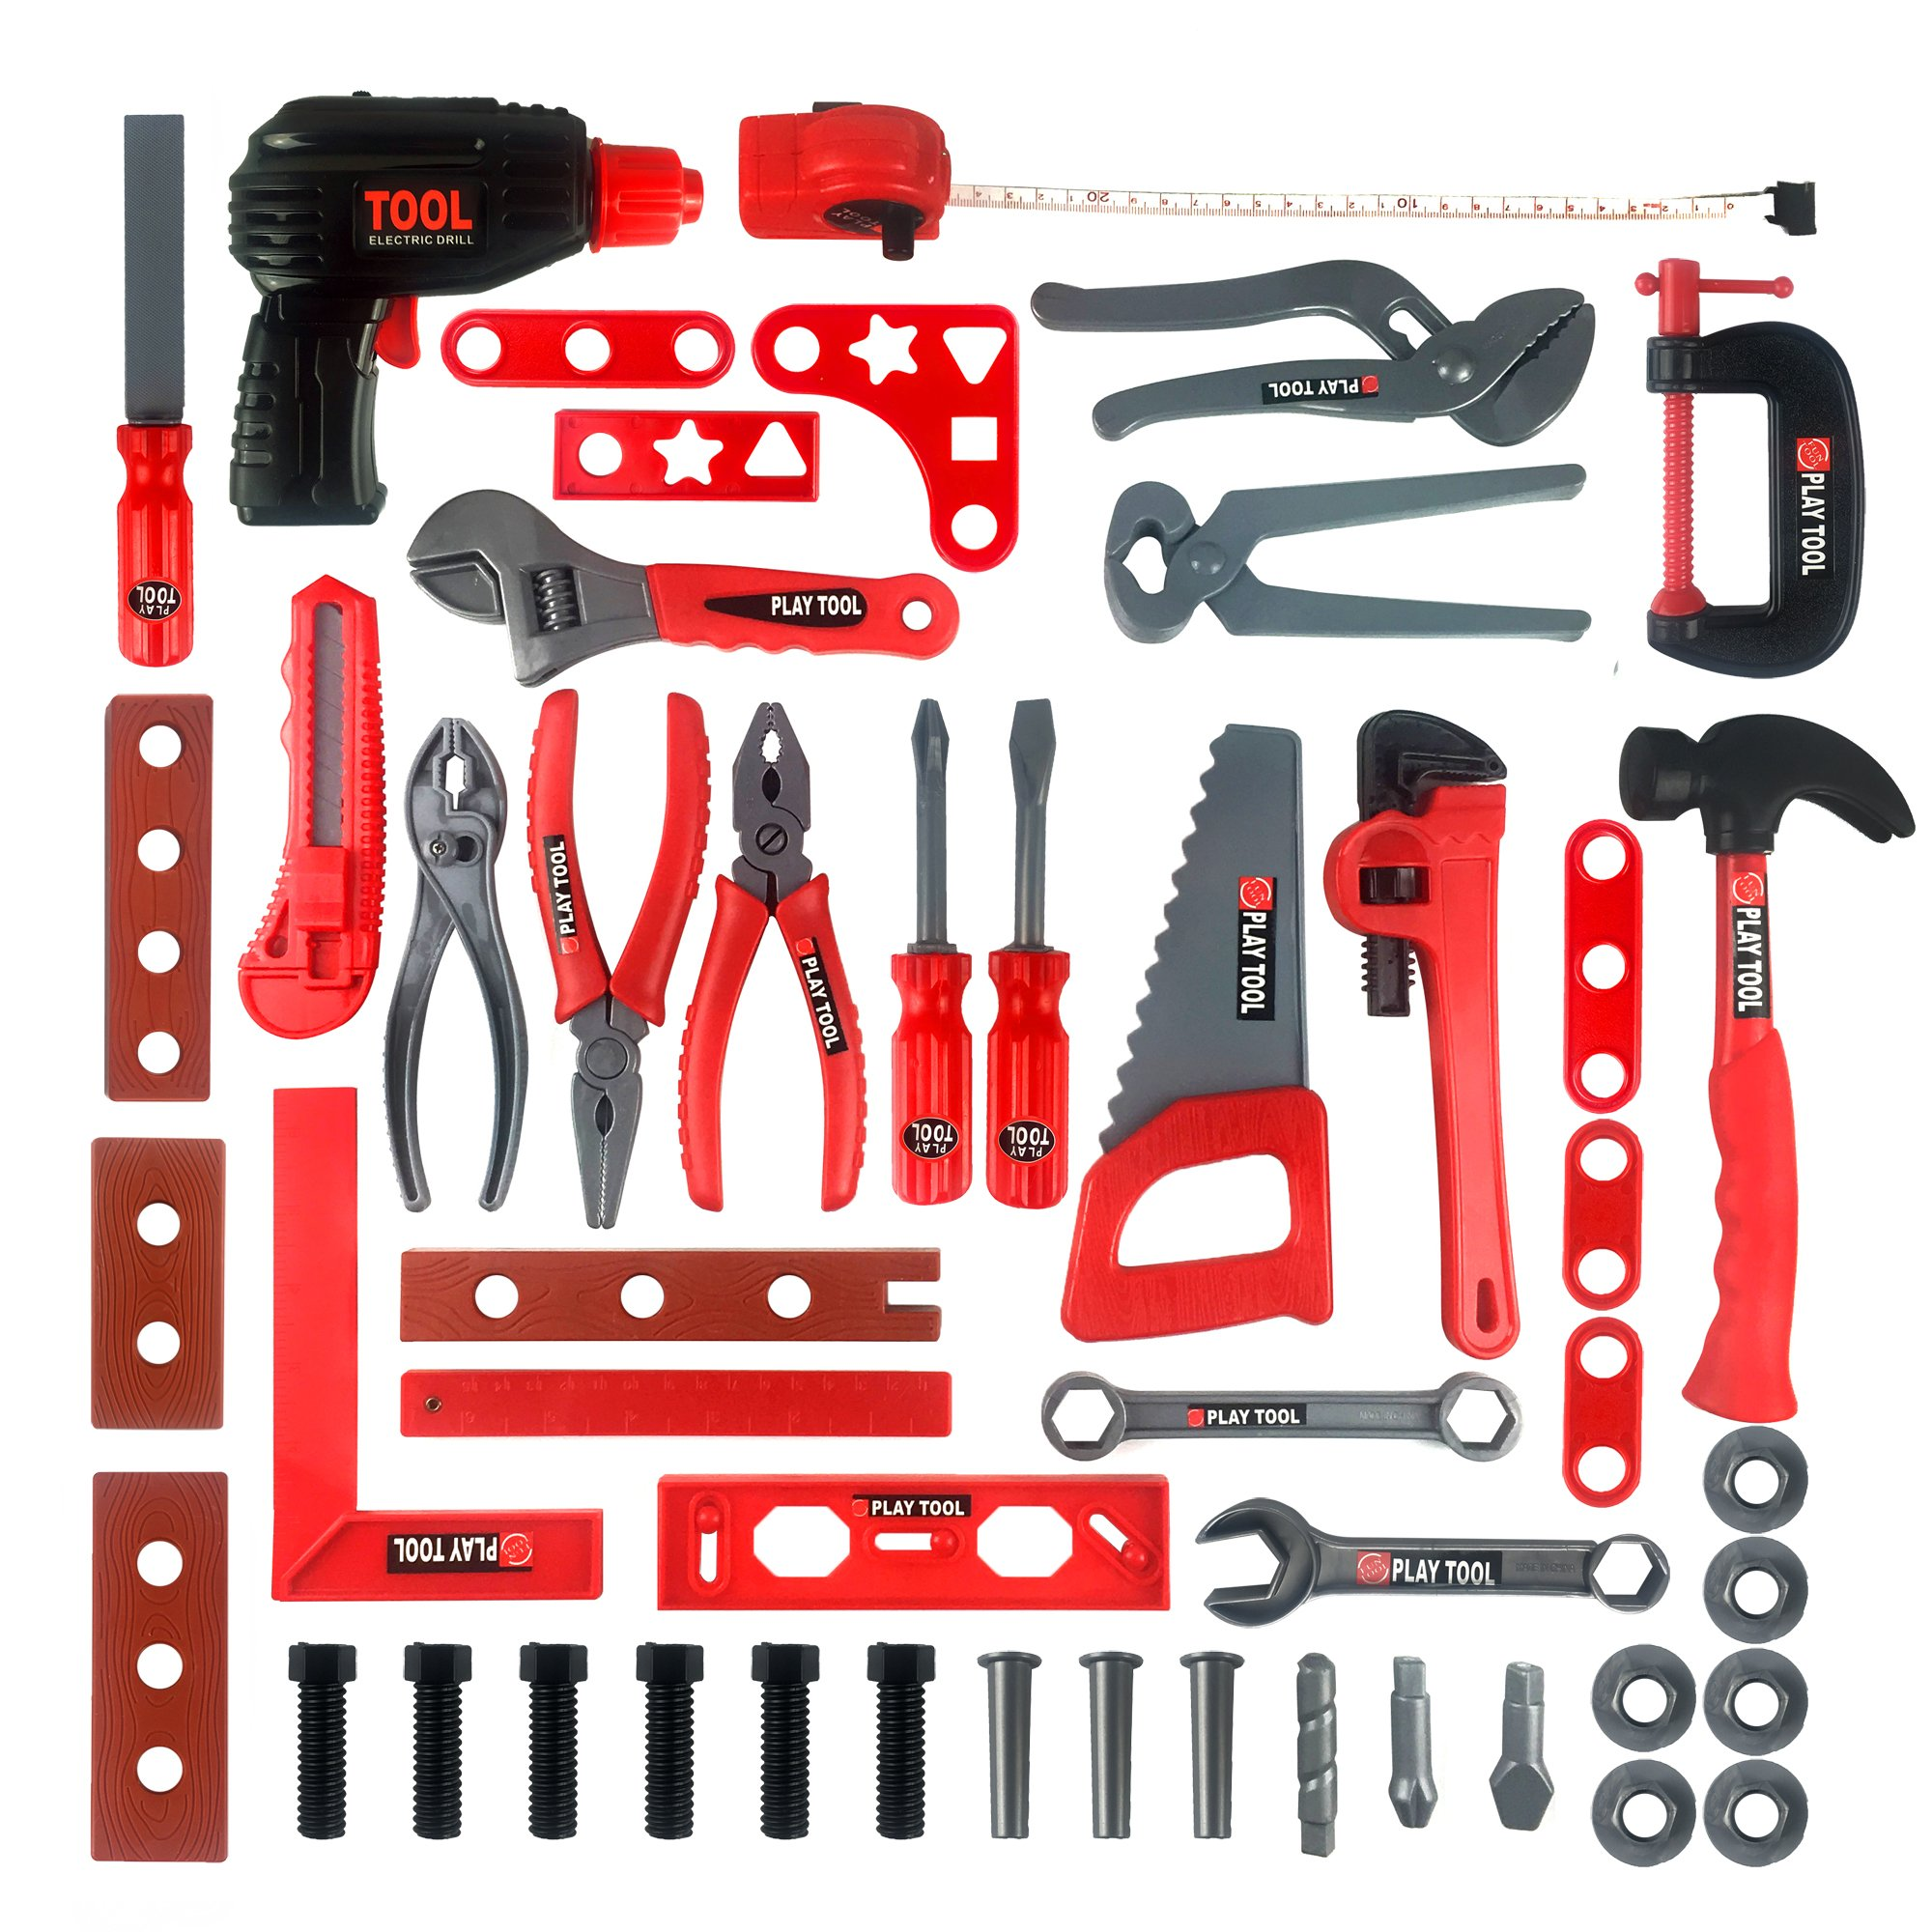 KIDAMI Deluxe 52 Piece Kids Toy Tool Set, Construction Tool Sets Pretend Play Toys with a Handy Storage Bag by KIDAMI (Image #1)